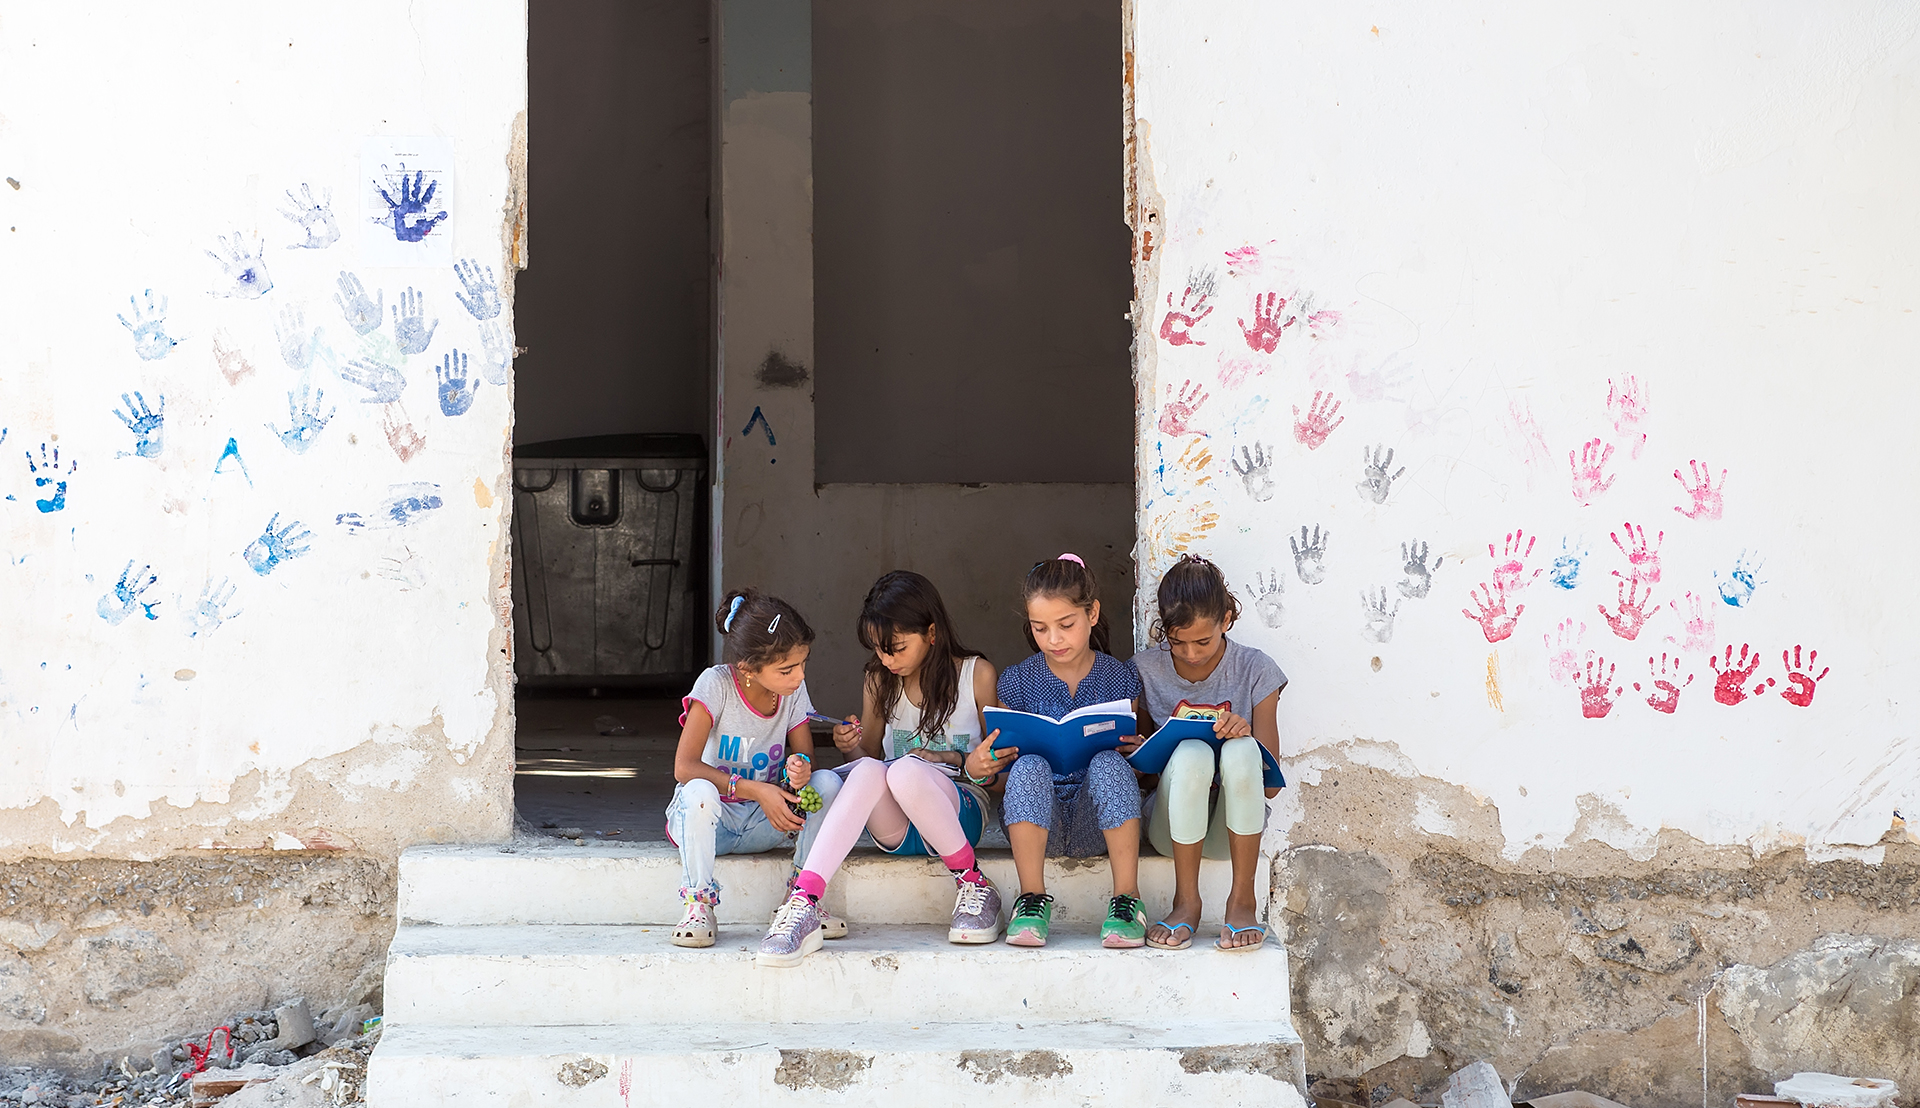 Rutgers Global - Children sit on stairs in the refugee camp of Lagadikia, Greece, some 40km North of Thessaloniki, during the visit of UN high commissioner for refugees, Filippo Grandi, on August 25, 2016.